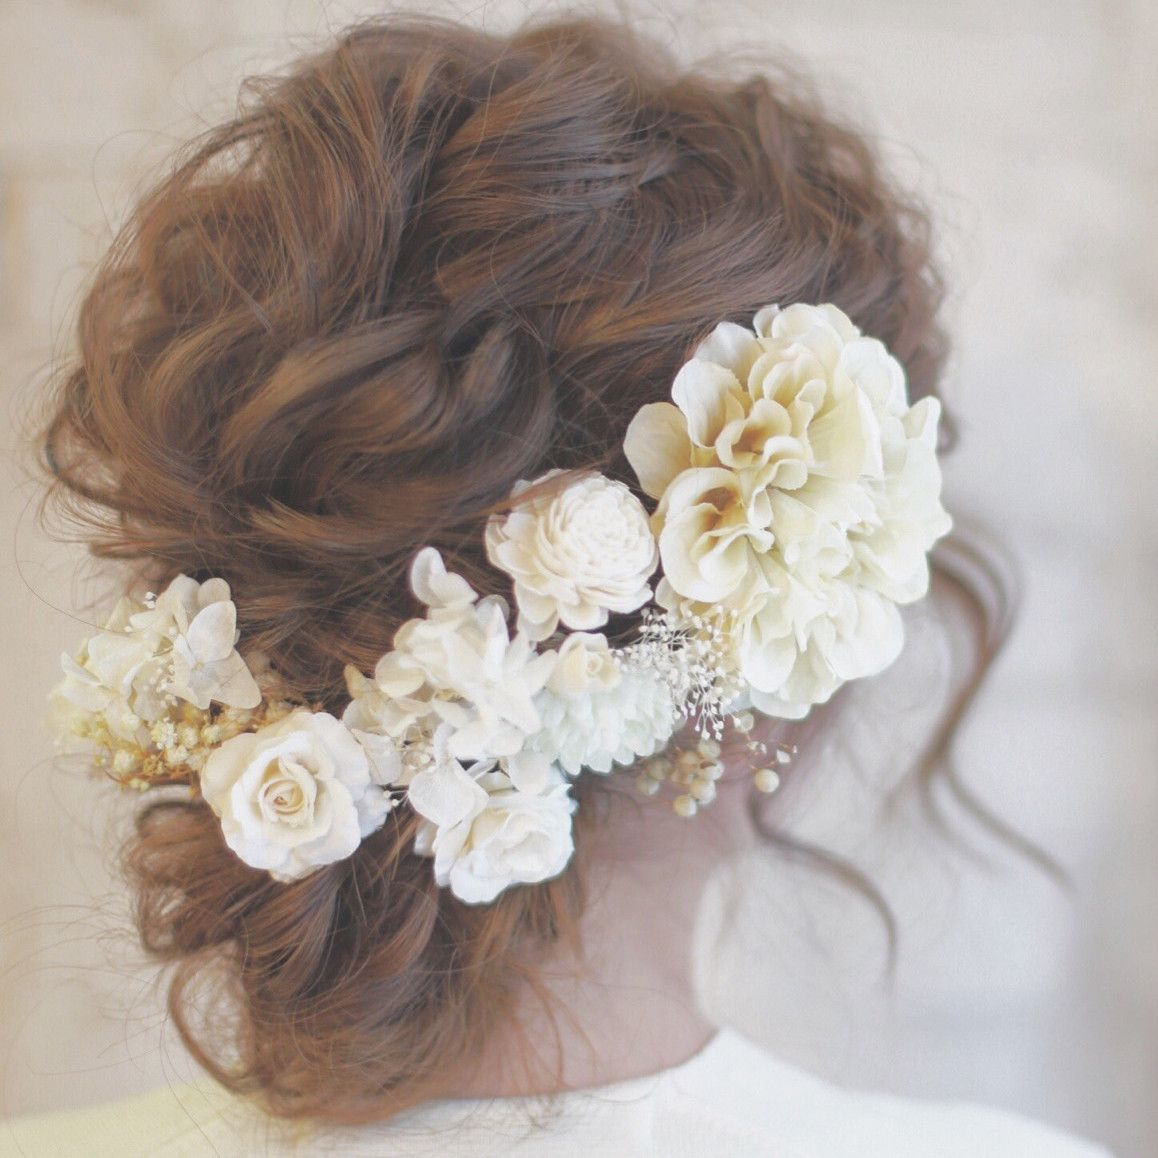 Photo of Let's make PhotoGenic style with flower x hair arrangement! | 【HAIR】